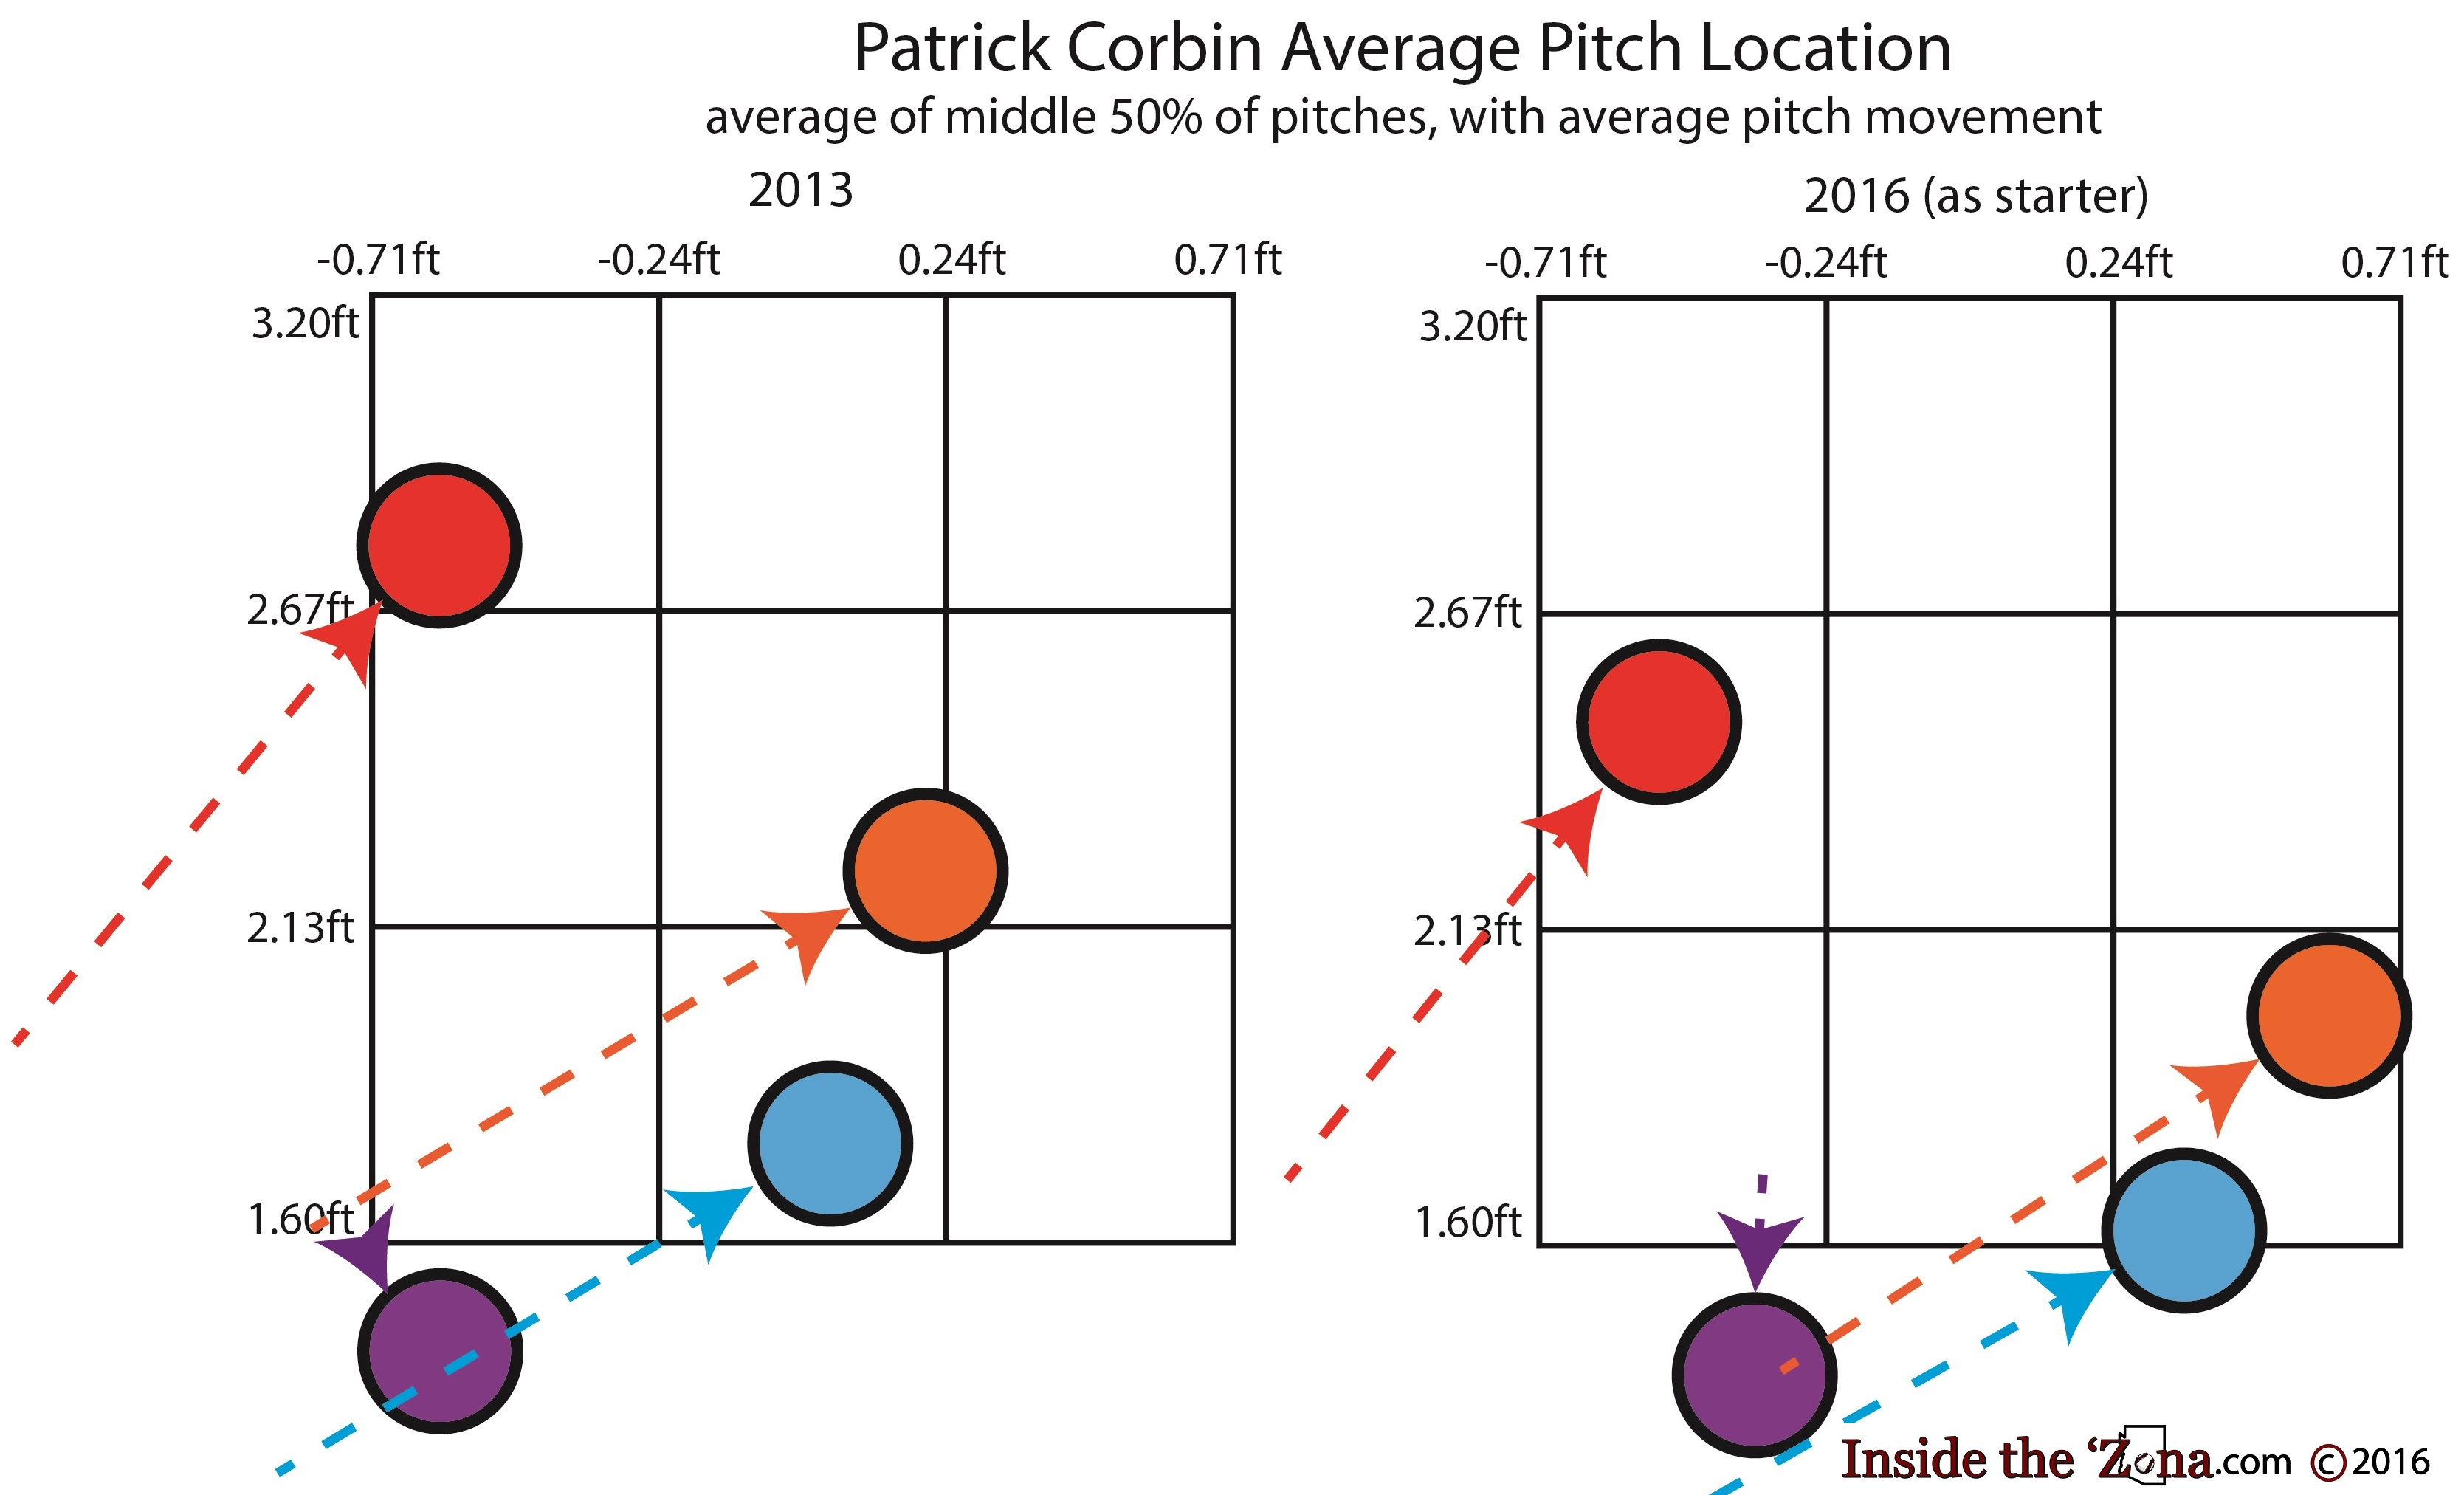 corbin-pitch-location-2013-and-2016-with-movement-and-text